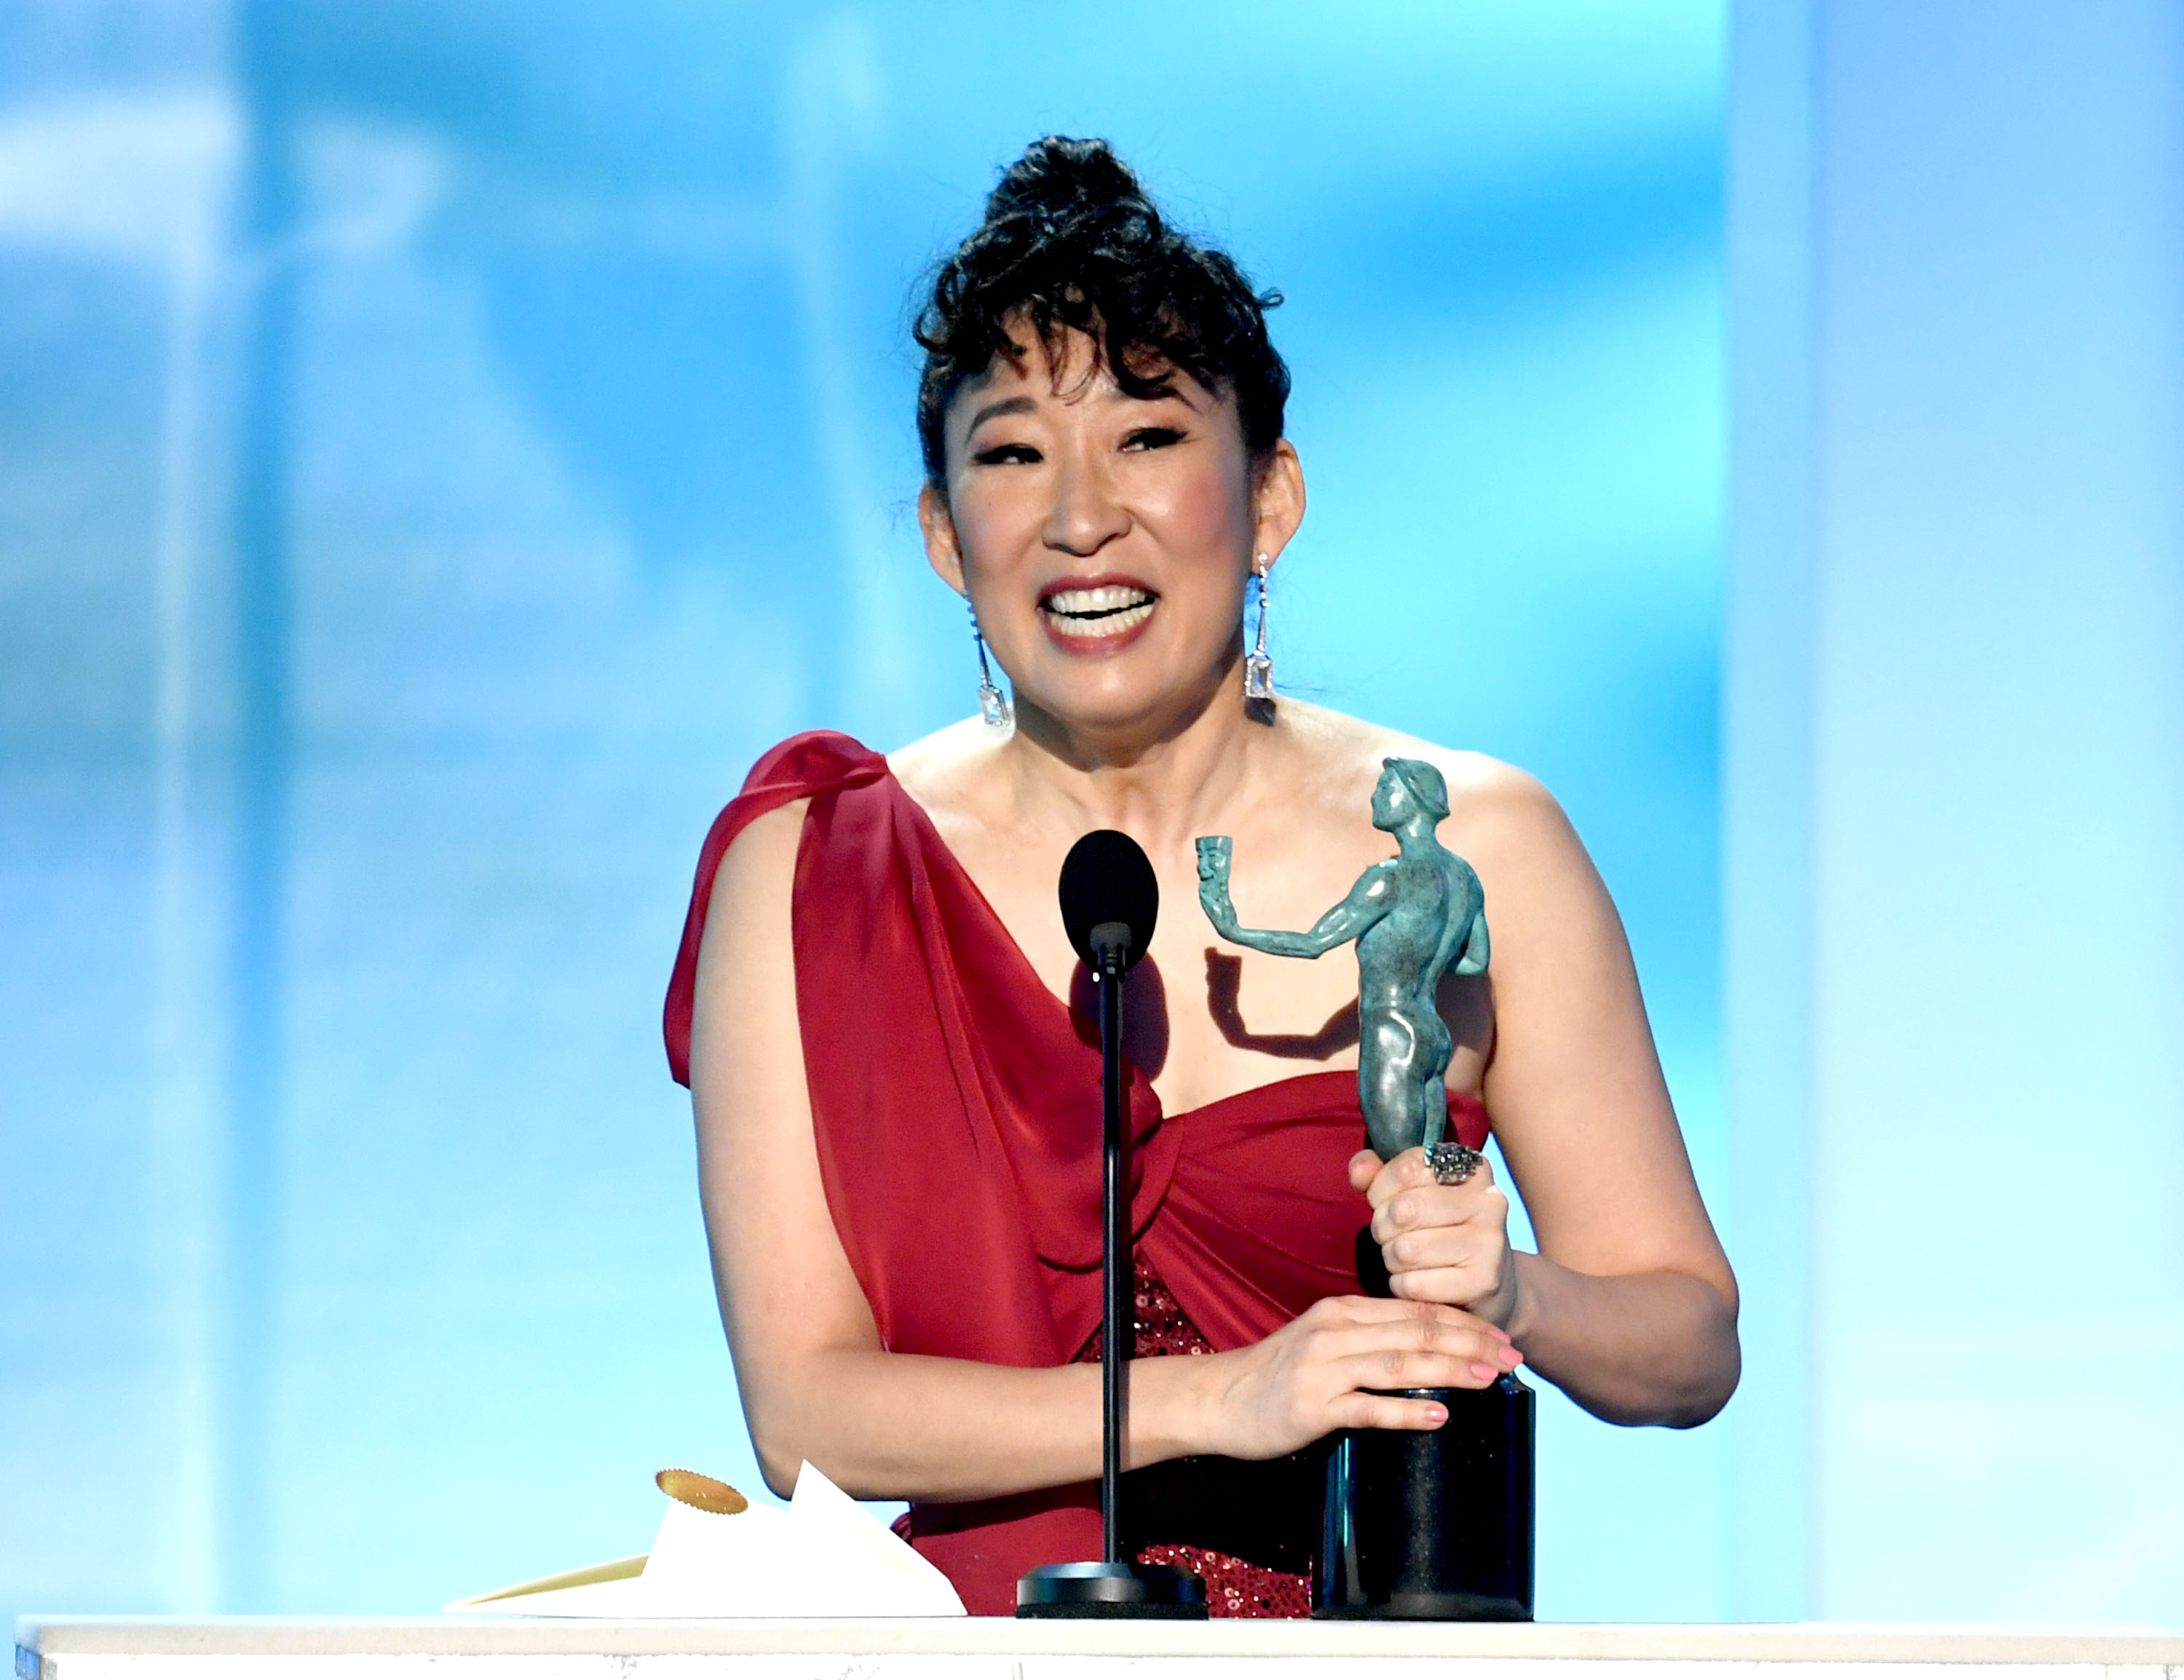 LOS ANGELES, CALIFORNIA - JANUARY 27: Sandra Oh accepts Outstanding Performance by a Female Actor in a Drama Series onstage during the 25th Annual Screen Actors Guild Awards at The Shrine Auditorium on January 27, 2019 in Los Angeles, California. (Photo by Kevin Winter/Getty Images for Turner)